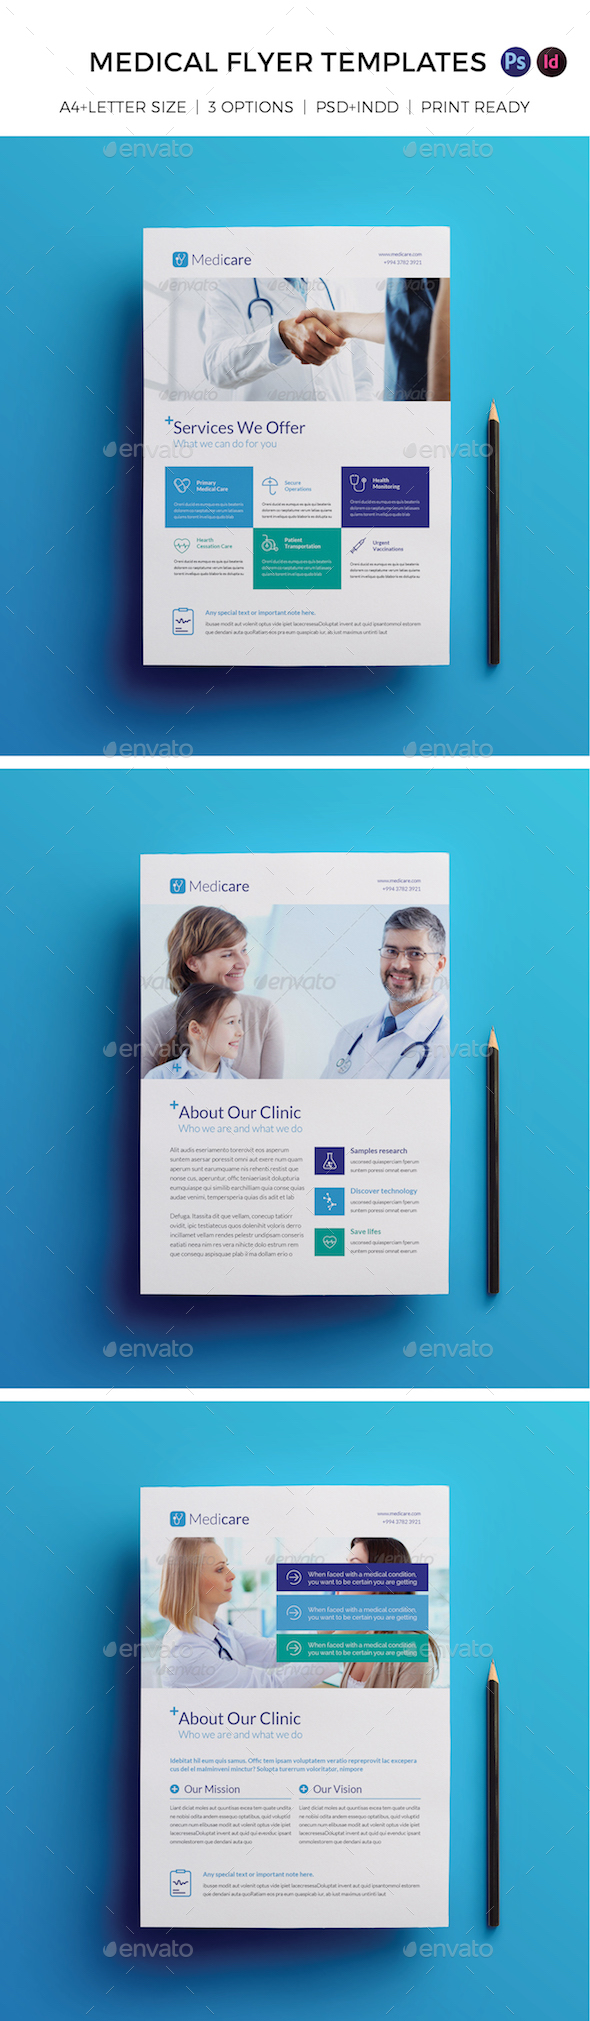 Medical Flyer Templates - Corporate Flyers